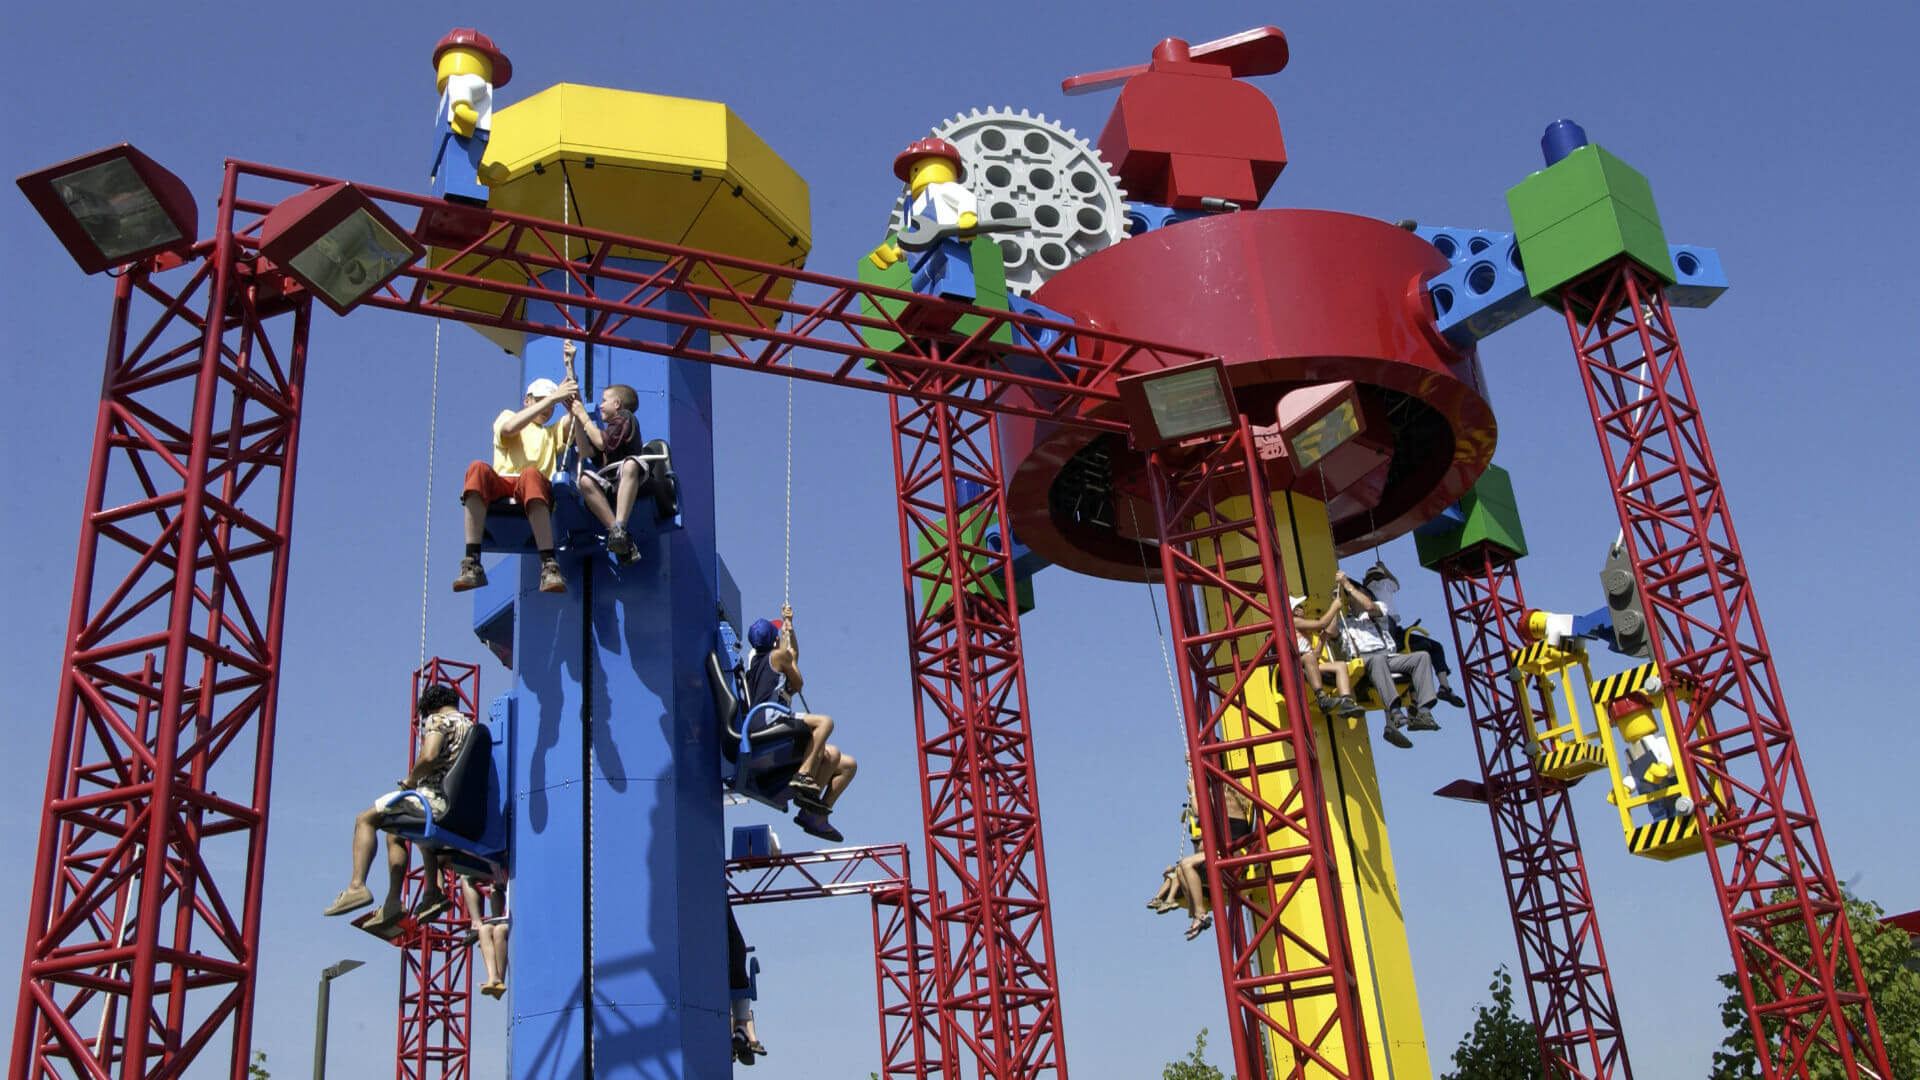 LEGOLAND Kids Power Tower